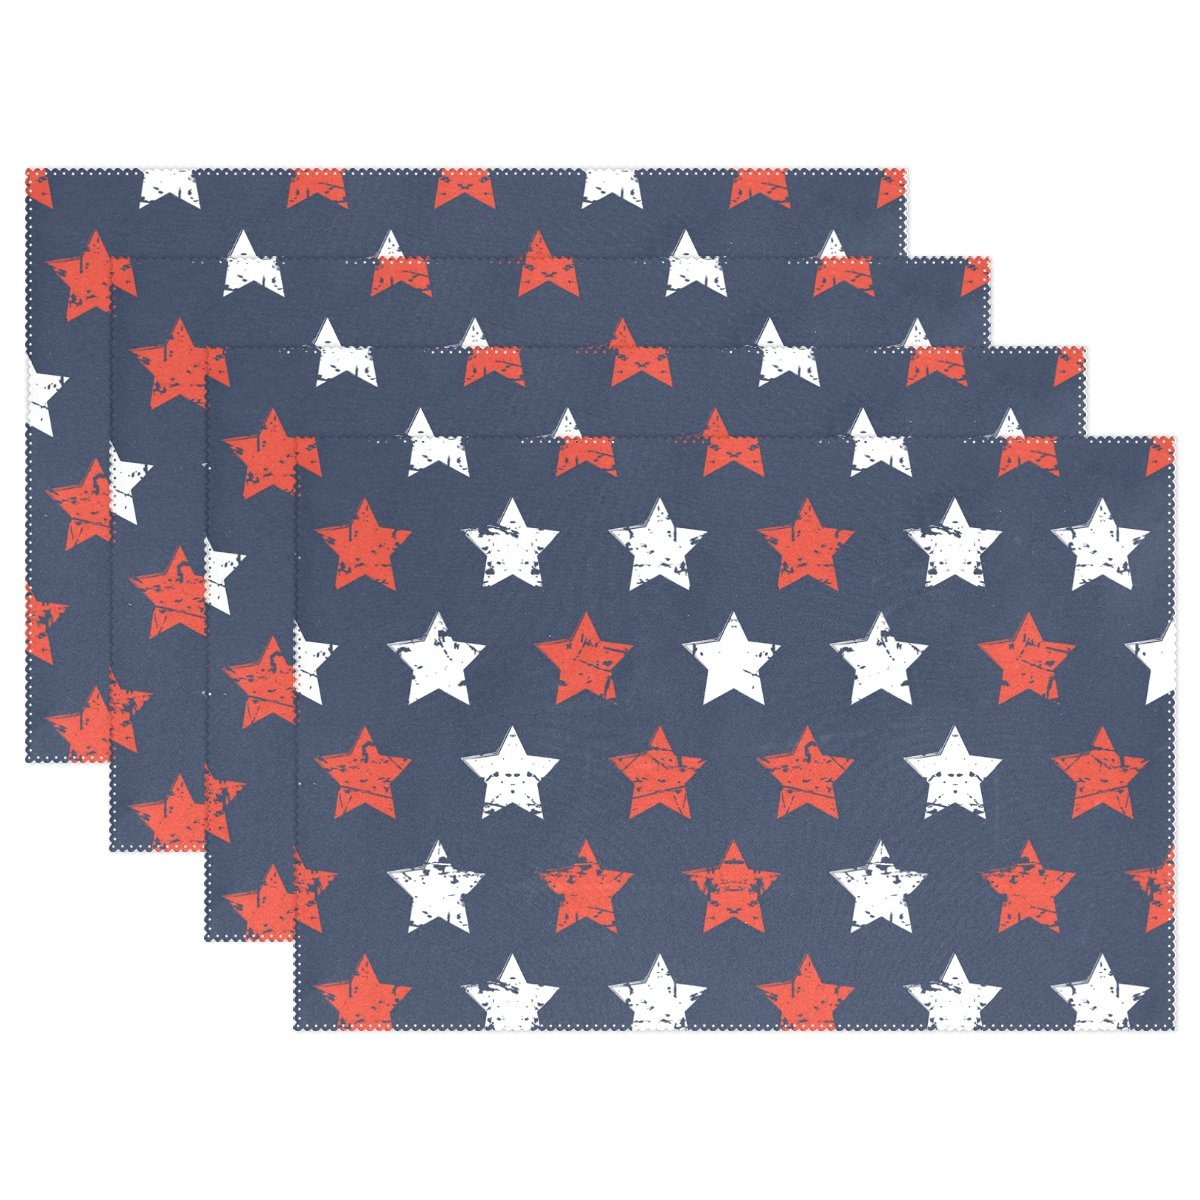 American Flag 4th of July Stars Patriotic Heat-resistant Table Placemats Set of 6 Stain Resistant Table Mats Washable Eat Mat for Parties Everyday & Holidays Use